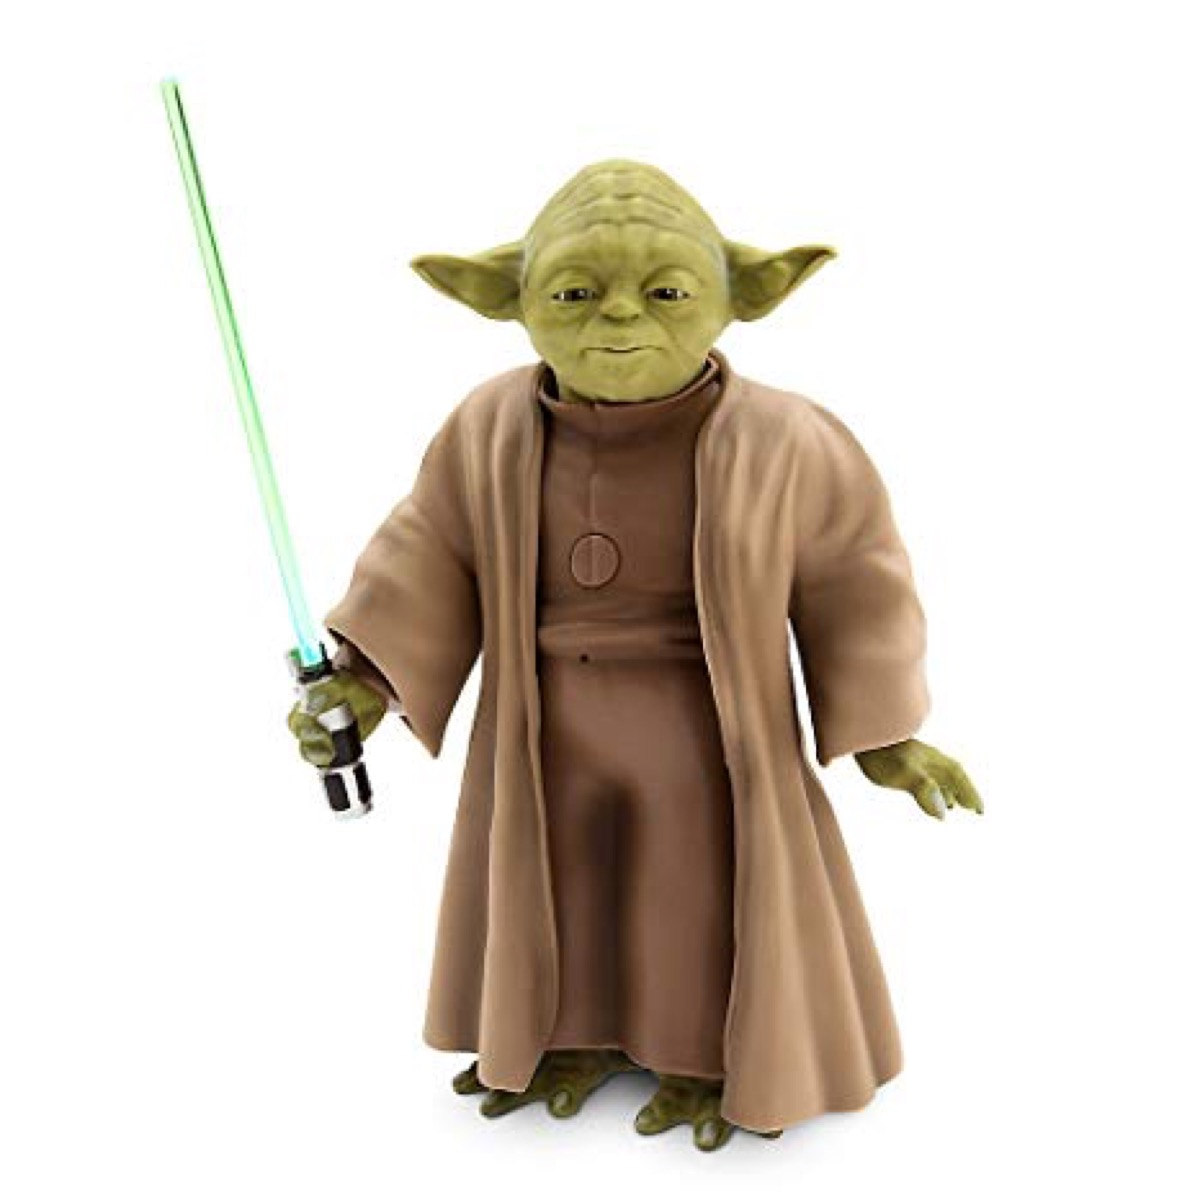 Yoda doll with lightsaber